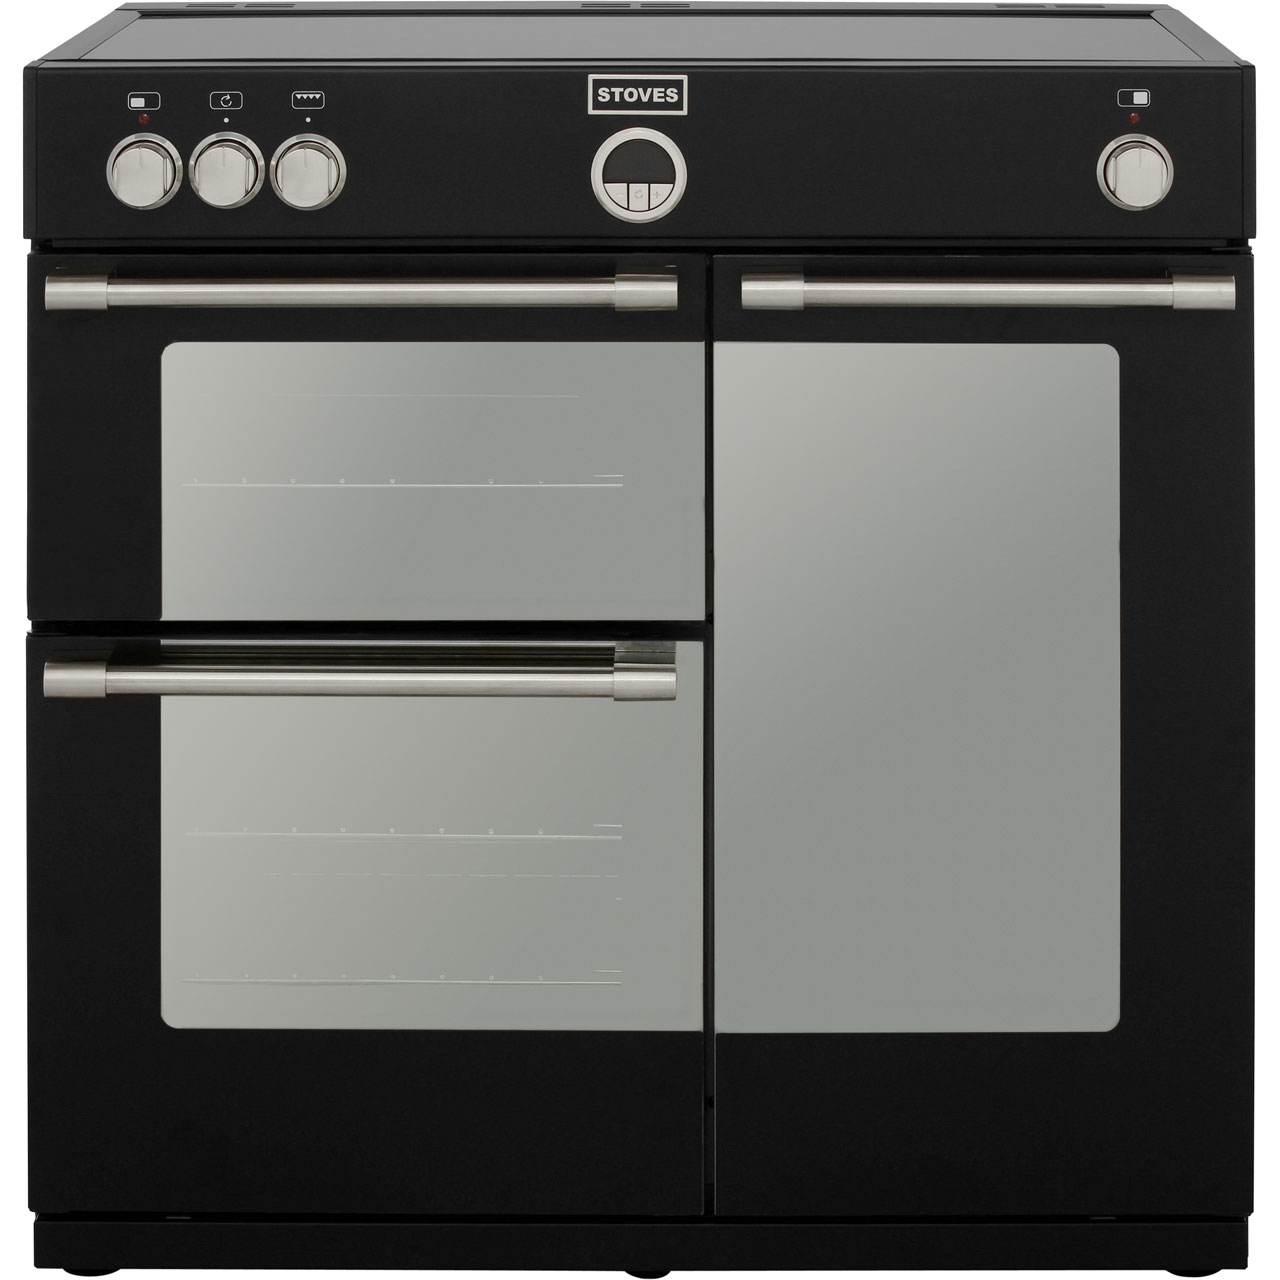 Boots Kitchen Appliances Washing Machines Fridges More Wiring Electric Oven And Induction Hob Our Images 9